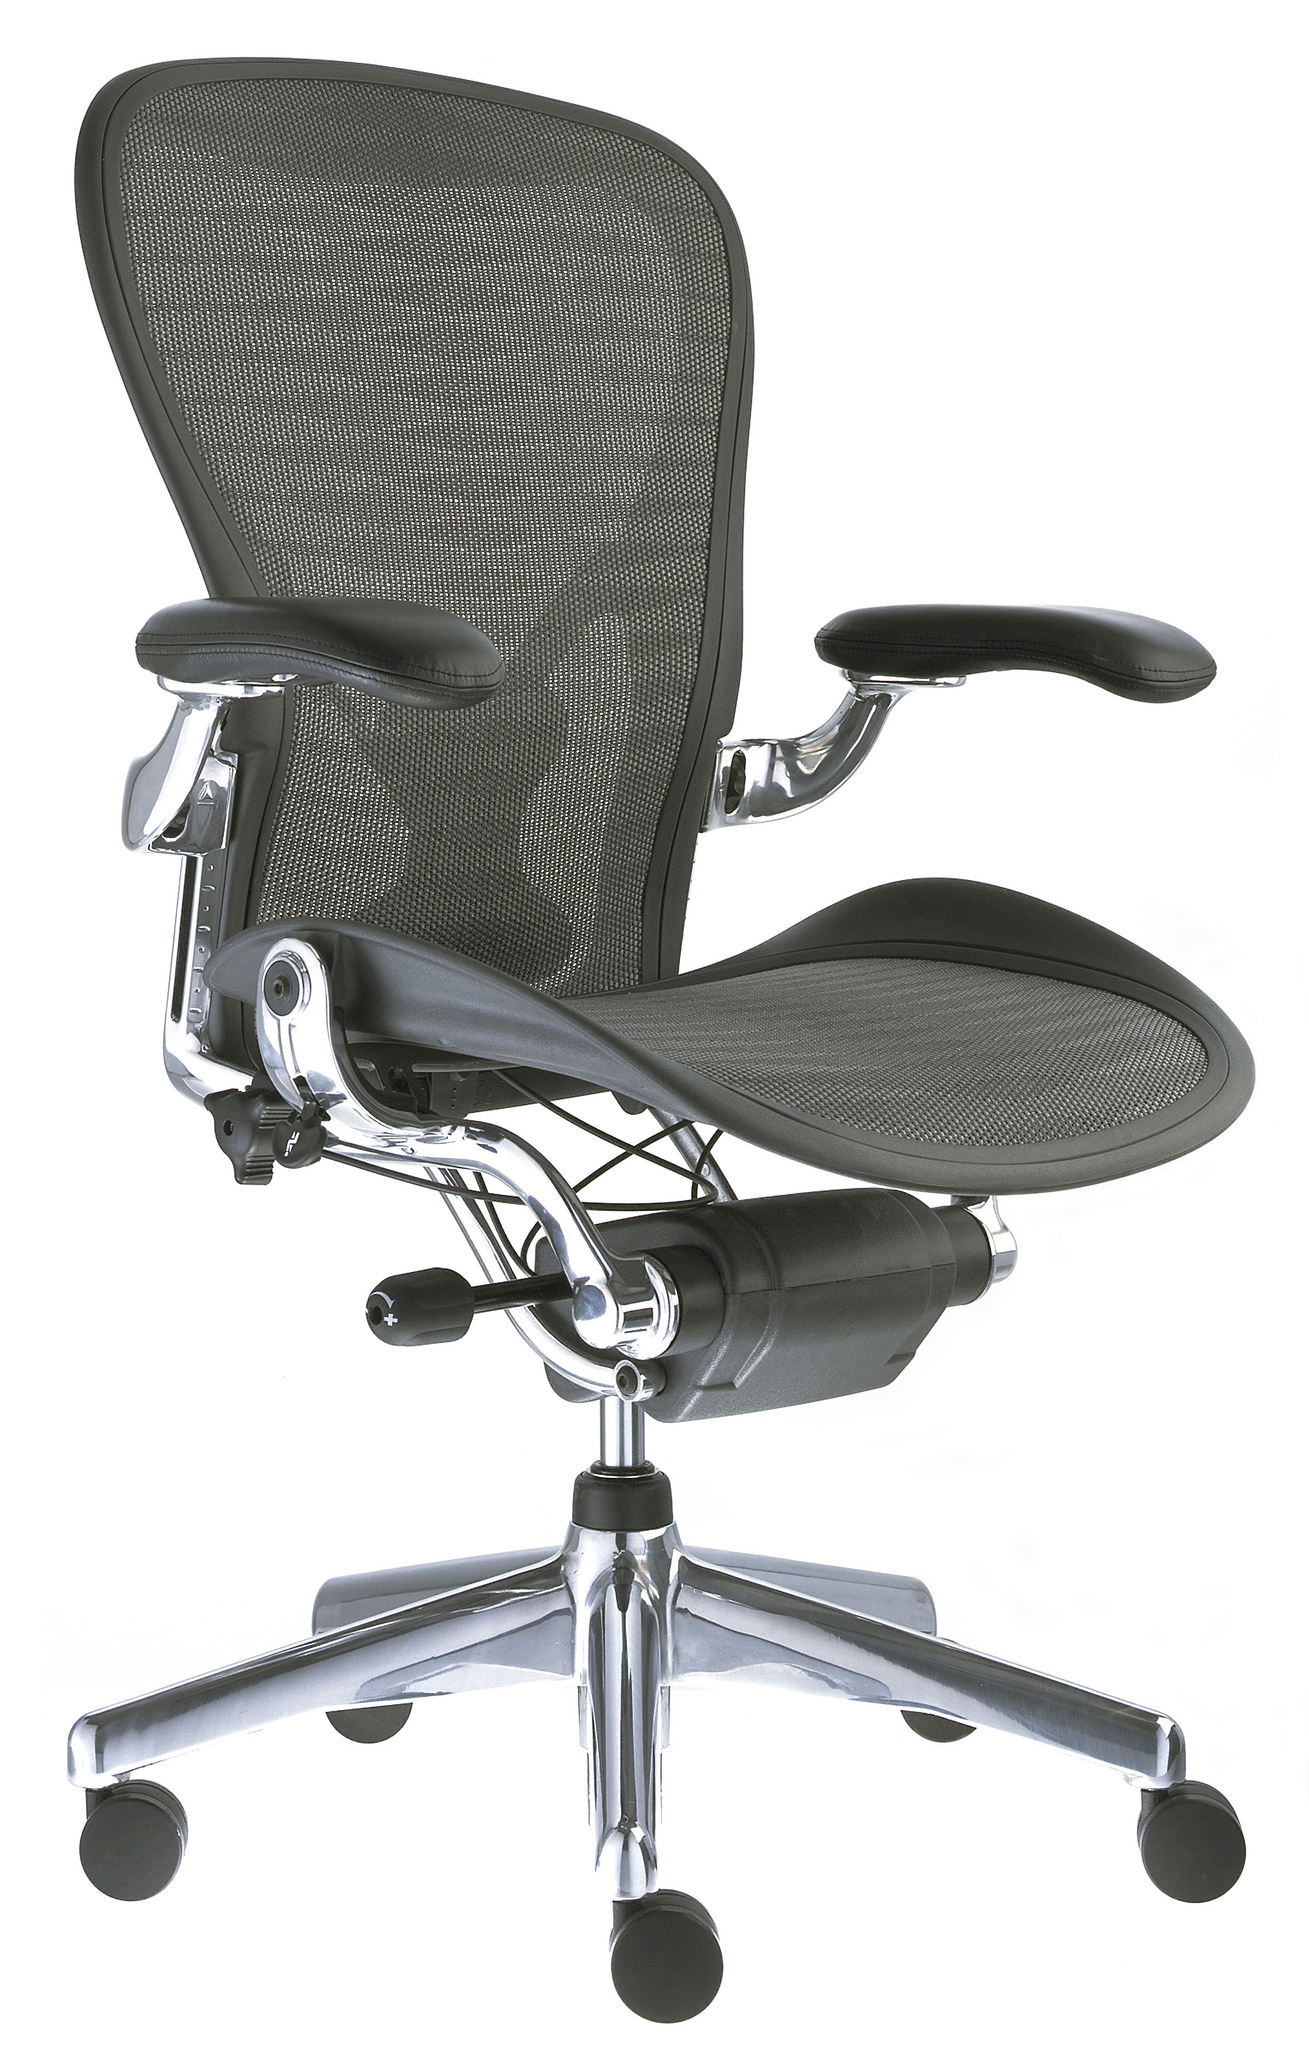 Ergonomic Chairs Dragonfly Office Interiors UK Office Furniture Off